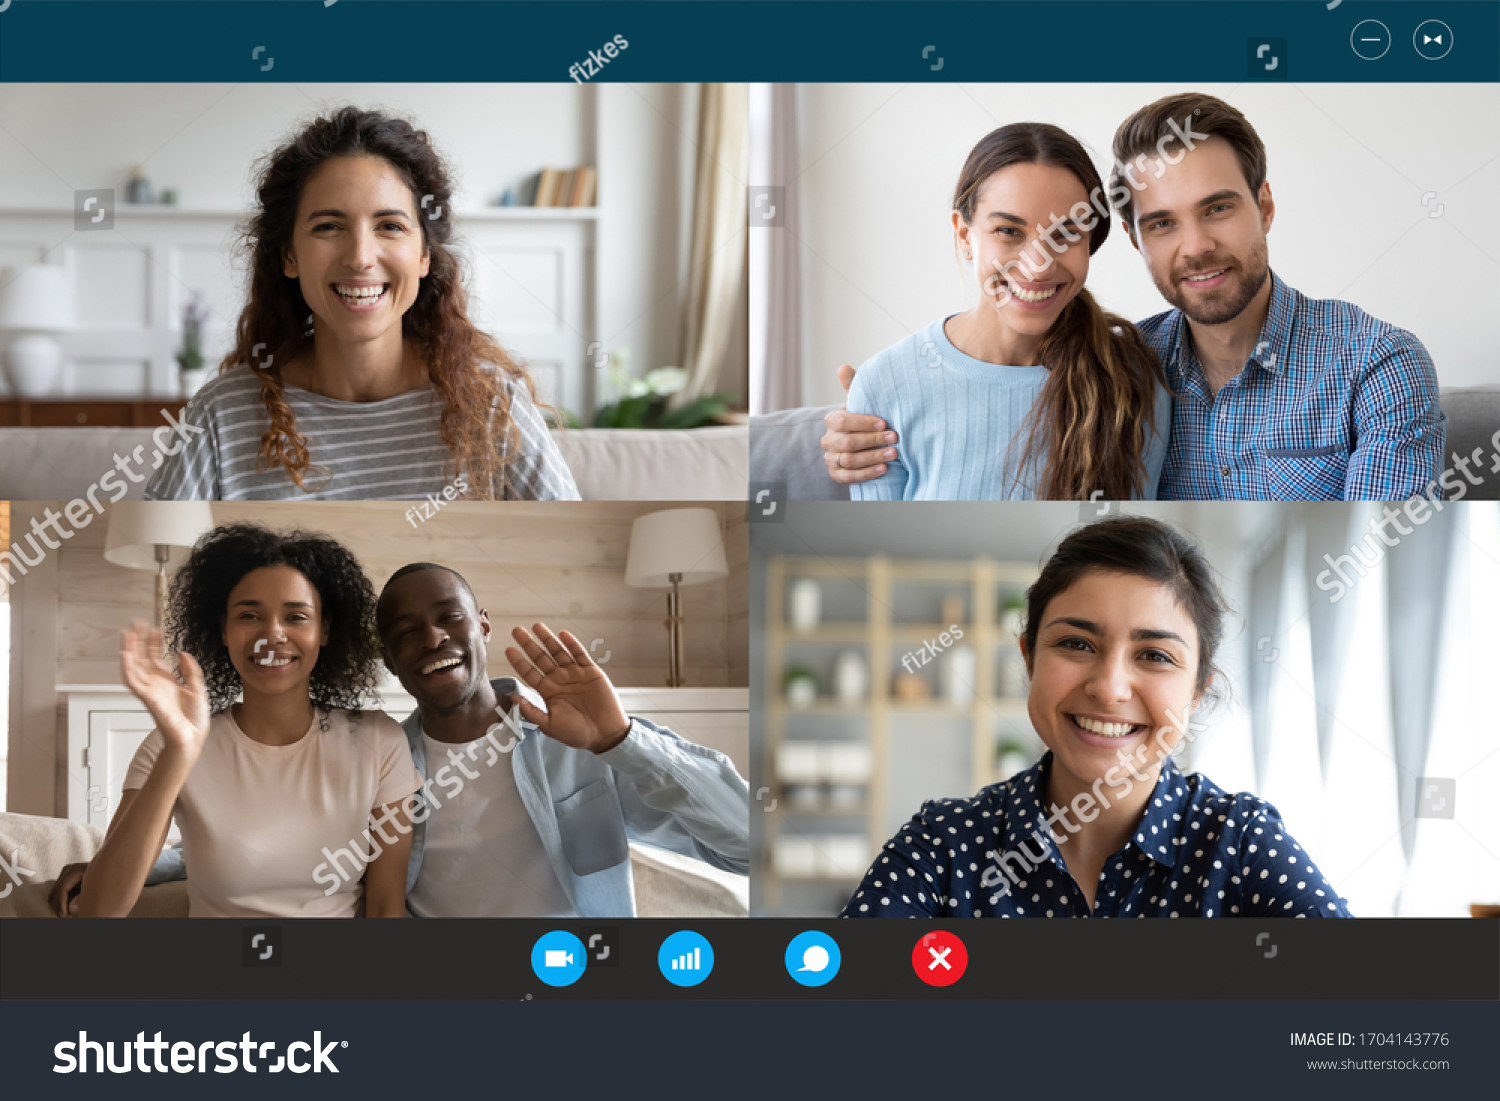 Laptop webcam screen view multiethnic families contacting distantly by videoconference. Living abroad four diverse friends making video call enjoy communication, virtual interaction modern app concept #1704143776